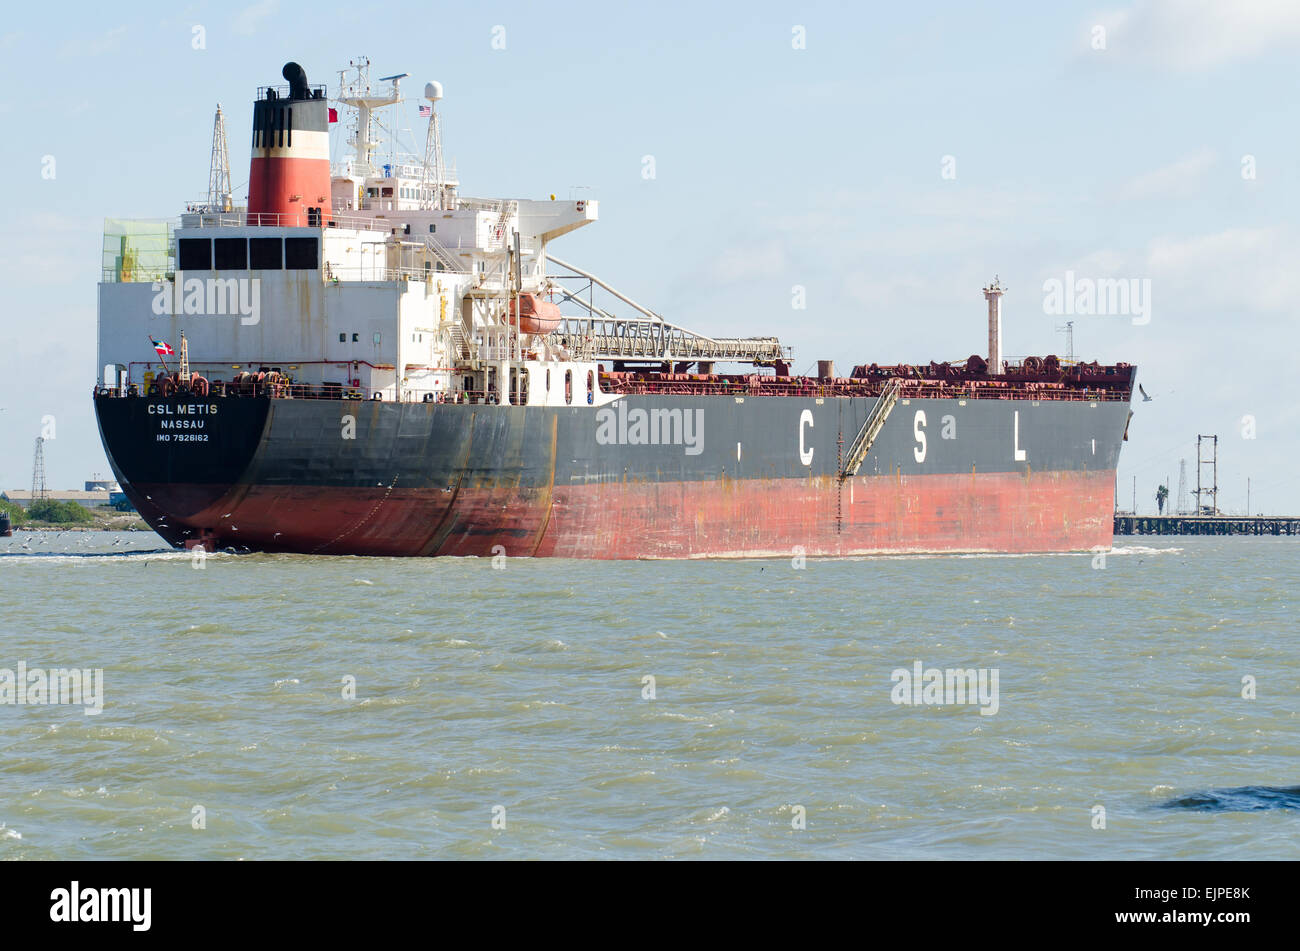 The CLS Metis a self discharging Bulk Carrier heading toward the Gulf of Mexico in the Corpus Christi ship channel - Stock Image